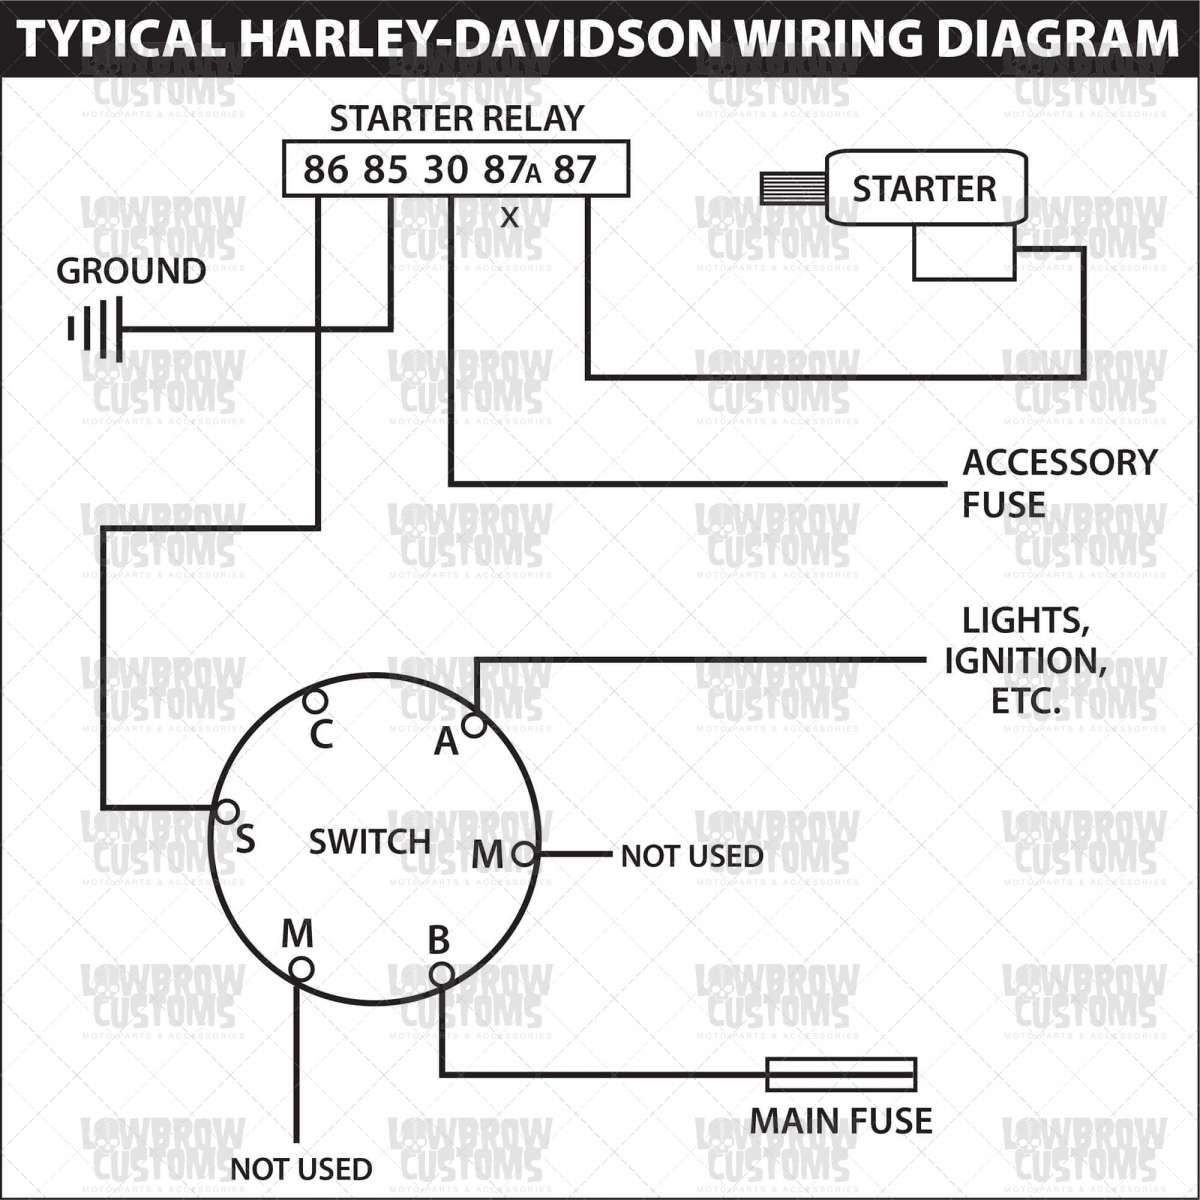 remote starter switch wiring diagrams 16 motorcycle ignition key diagram motorcycle diagram in 2020  16 motorcycle ignition key diagram